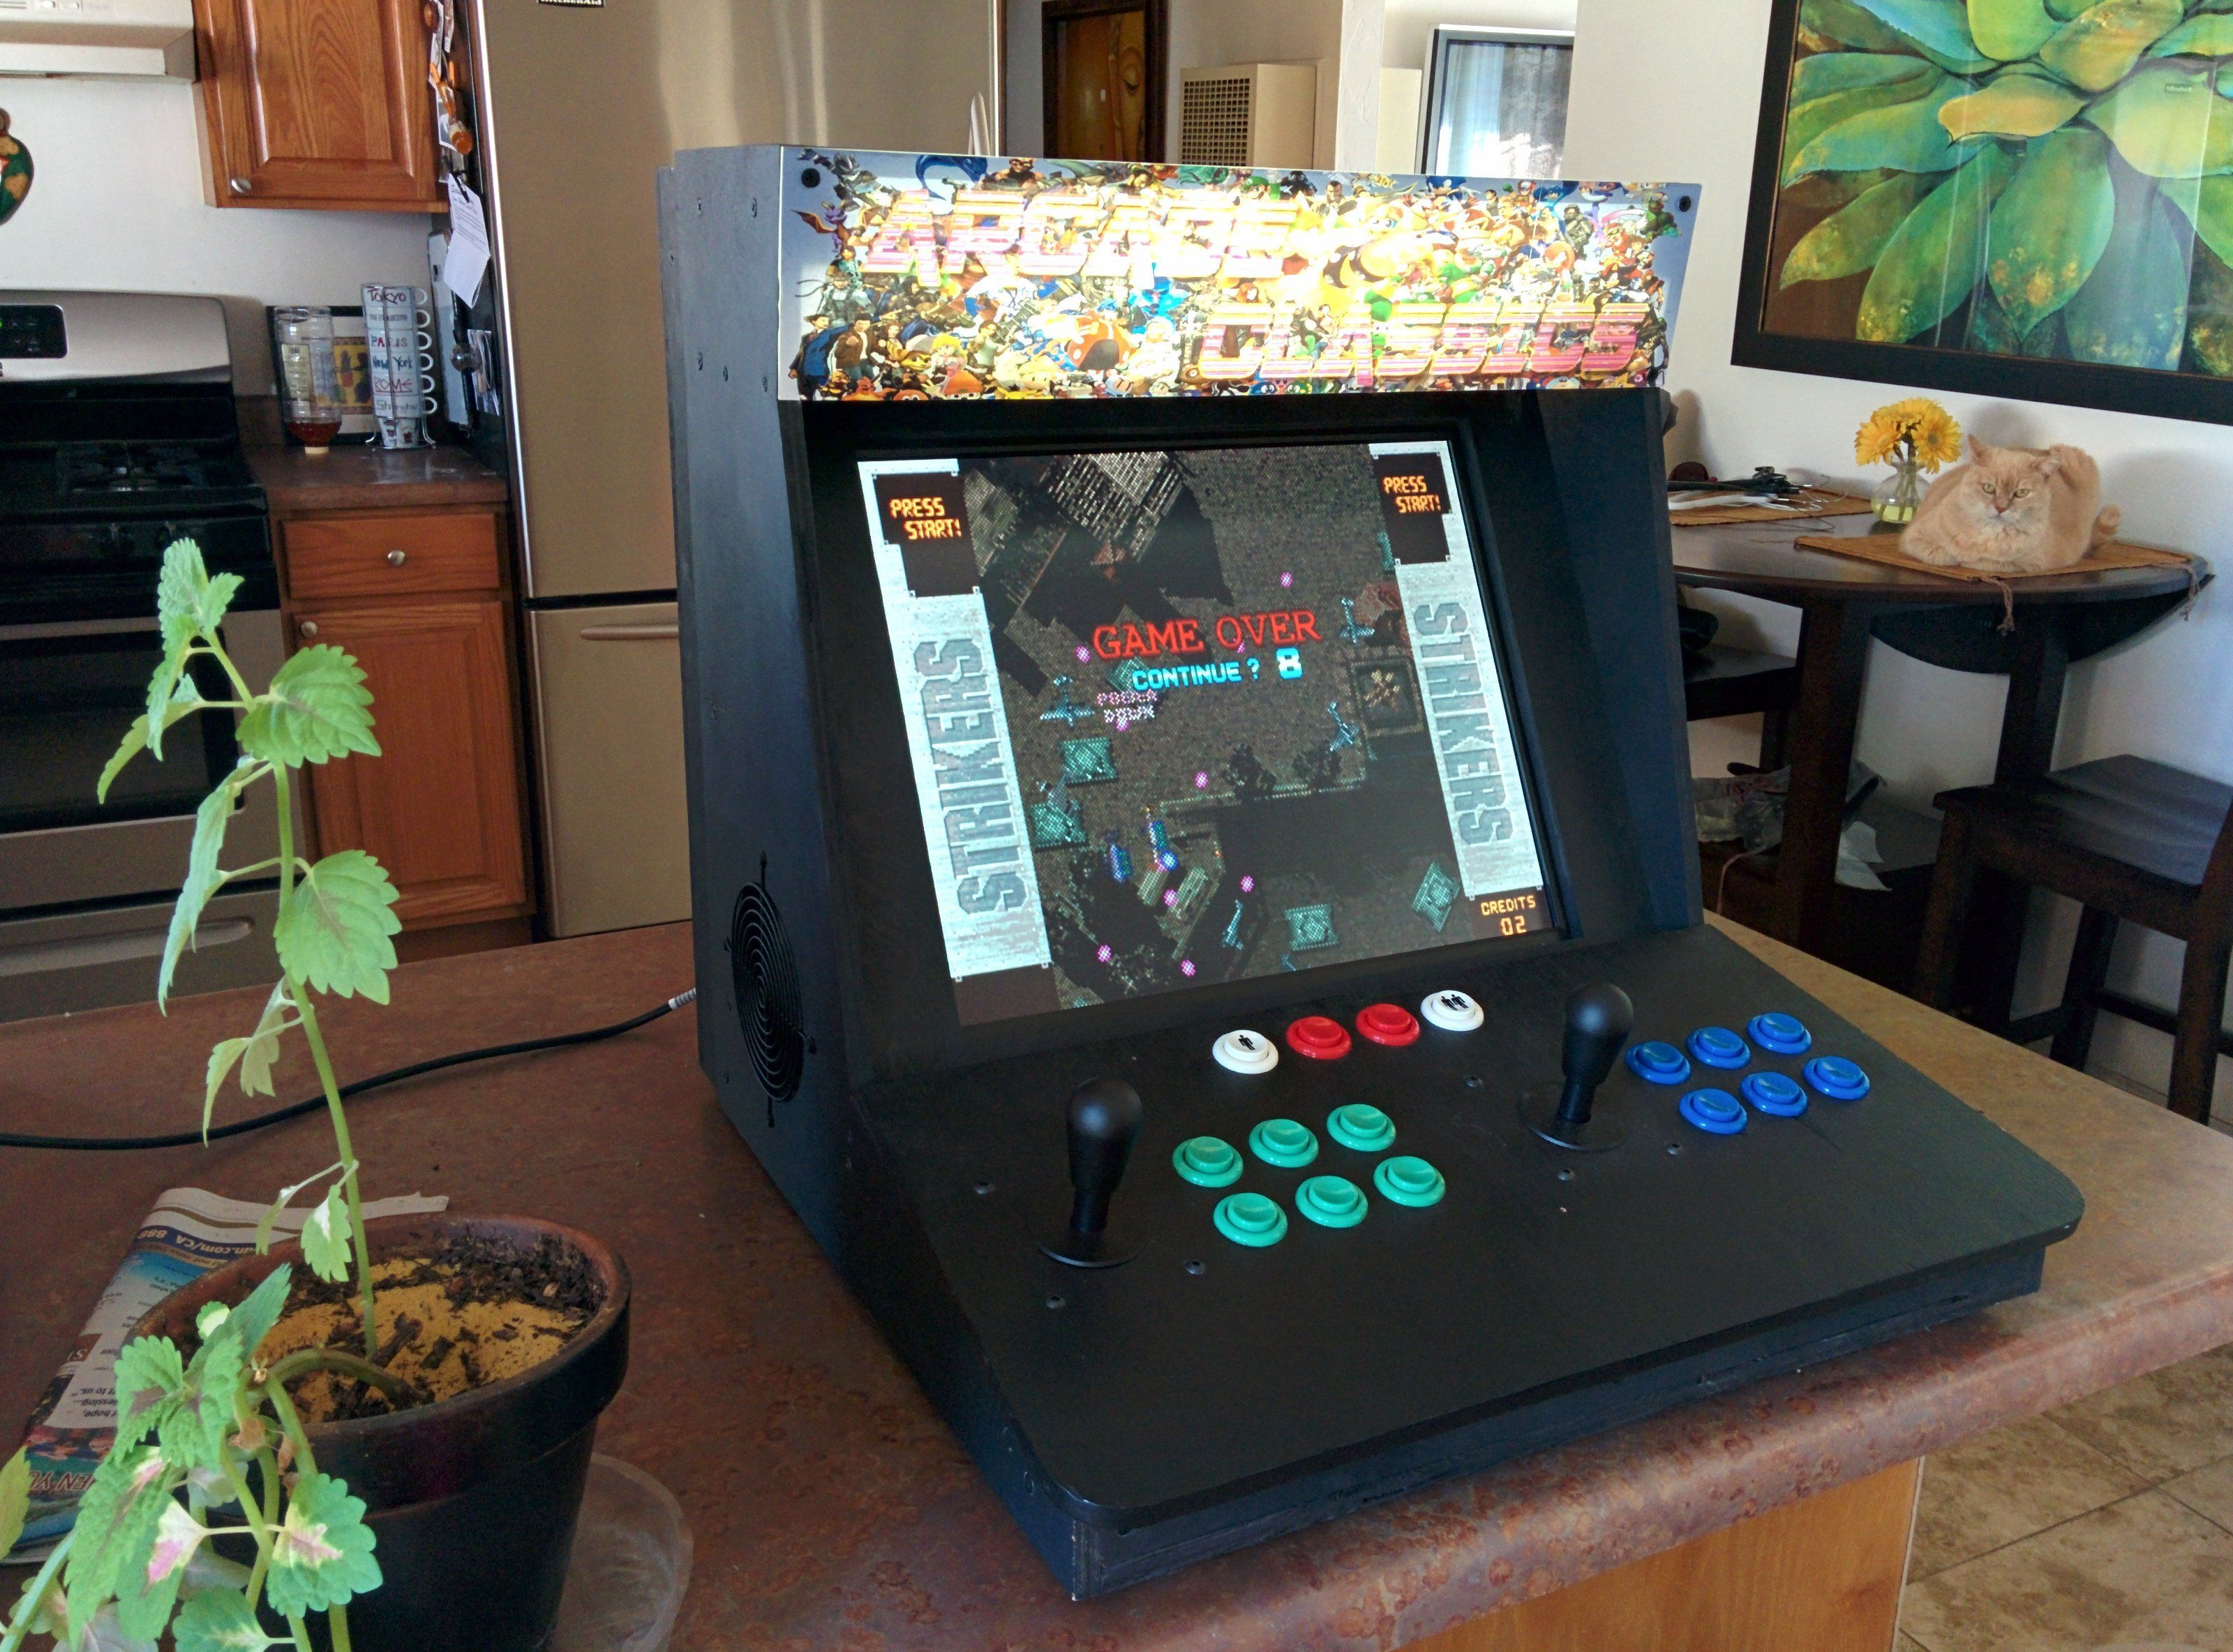 Take an unwanted desktop PC and build a bartop arcade gaming cabinet out of the parts. & Make a Bartop Video Arcade from an Old PC | Pinterest | Arcade and PC